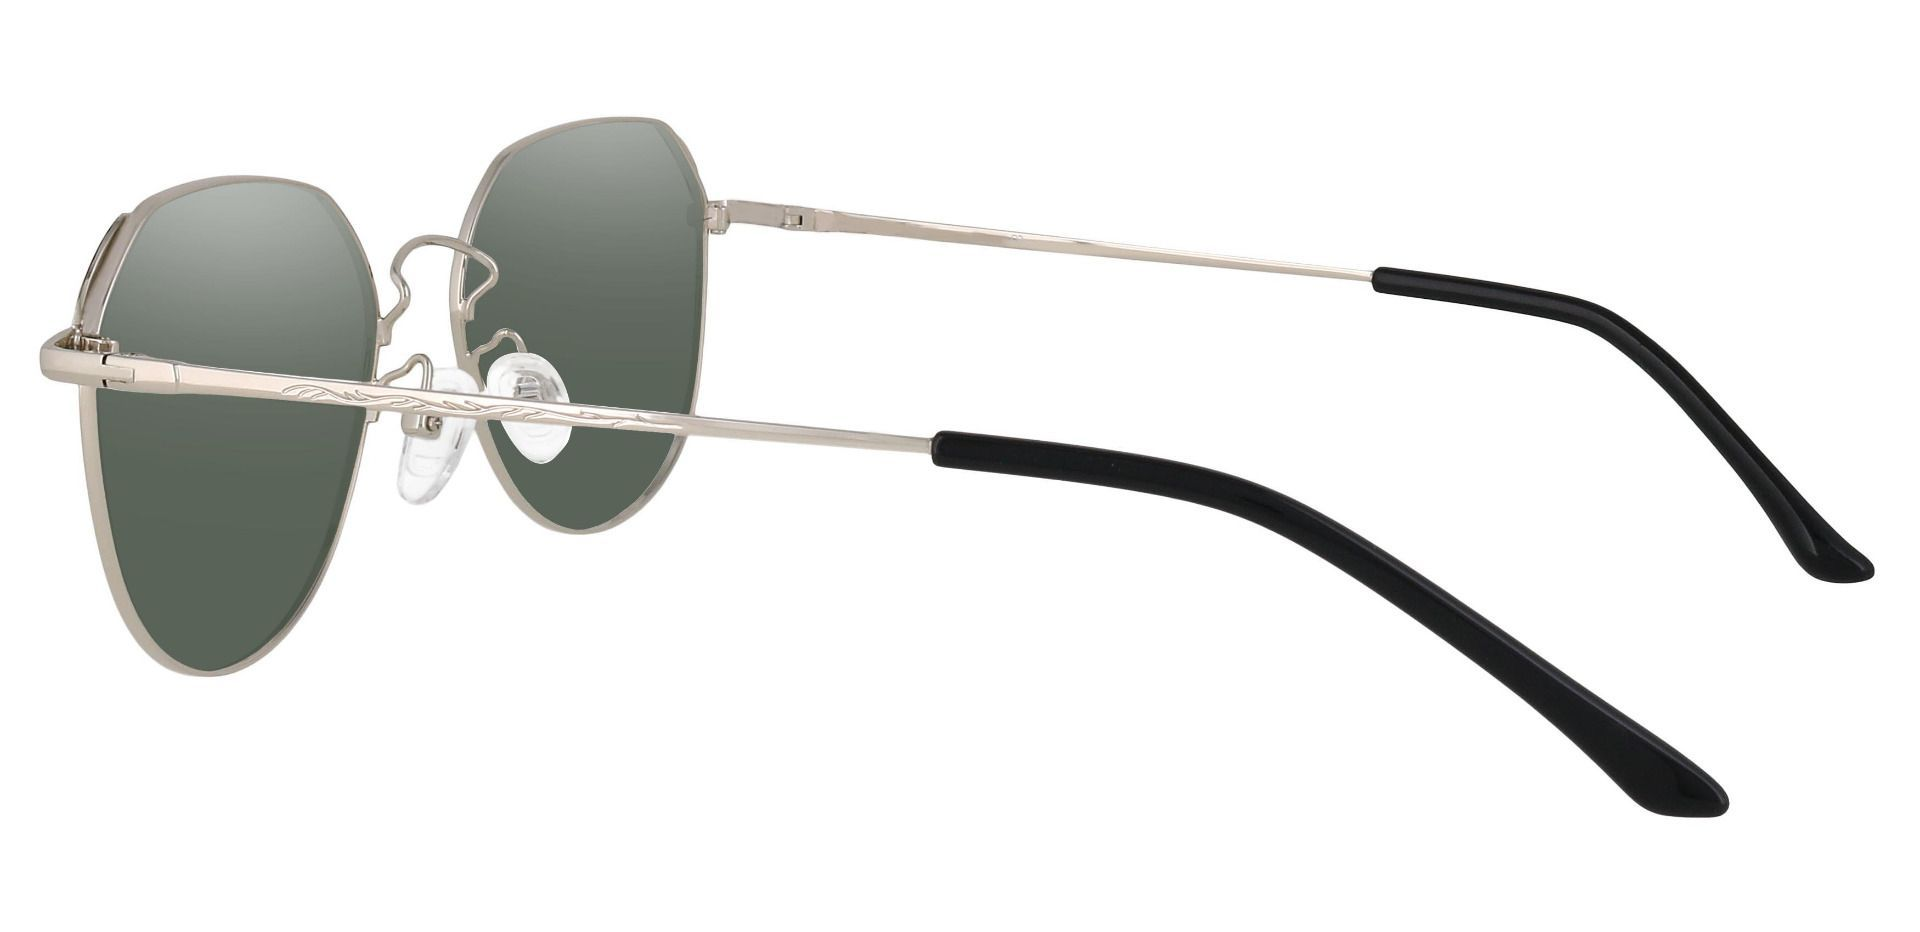 Figaro Geometric Reading Sunglasses - Silver Frame With Green Lenses